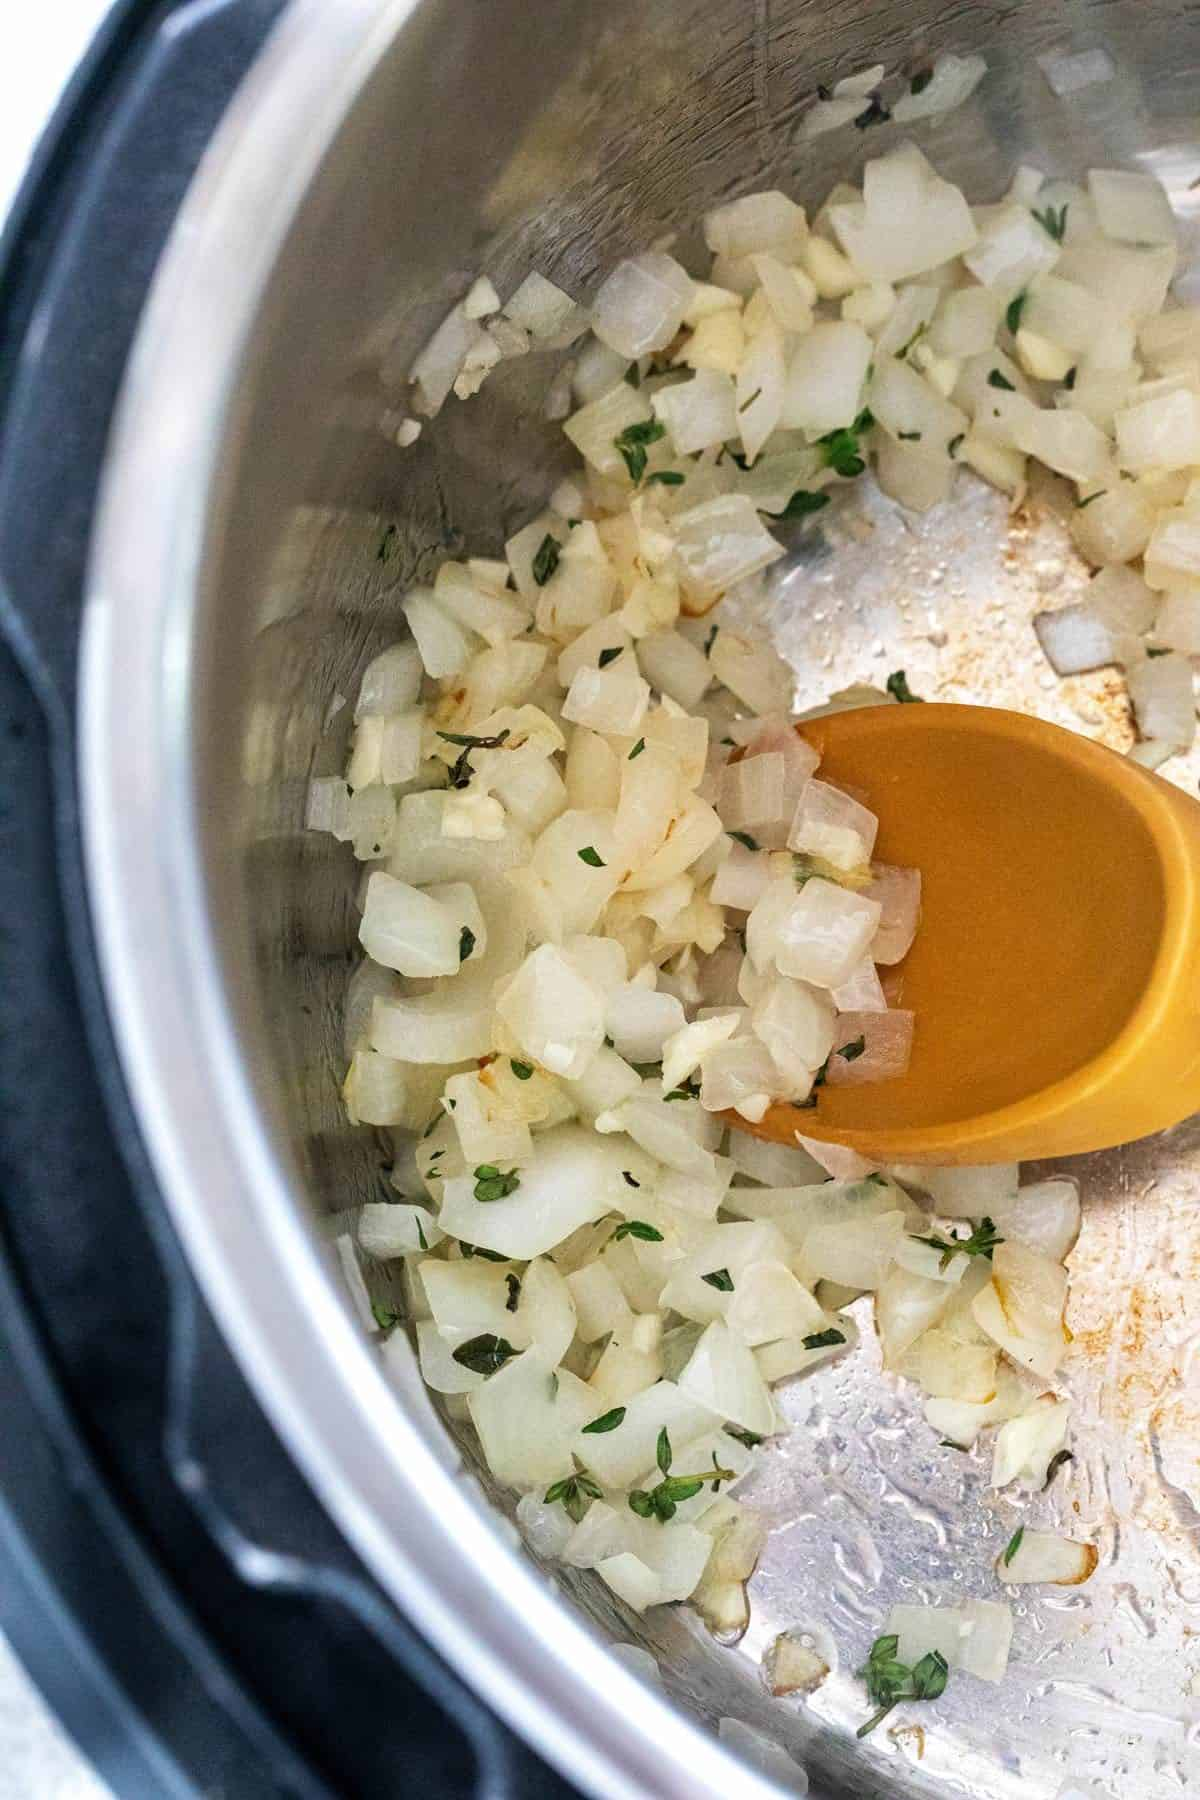 Sauteing diced onions in a pot